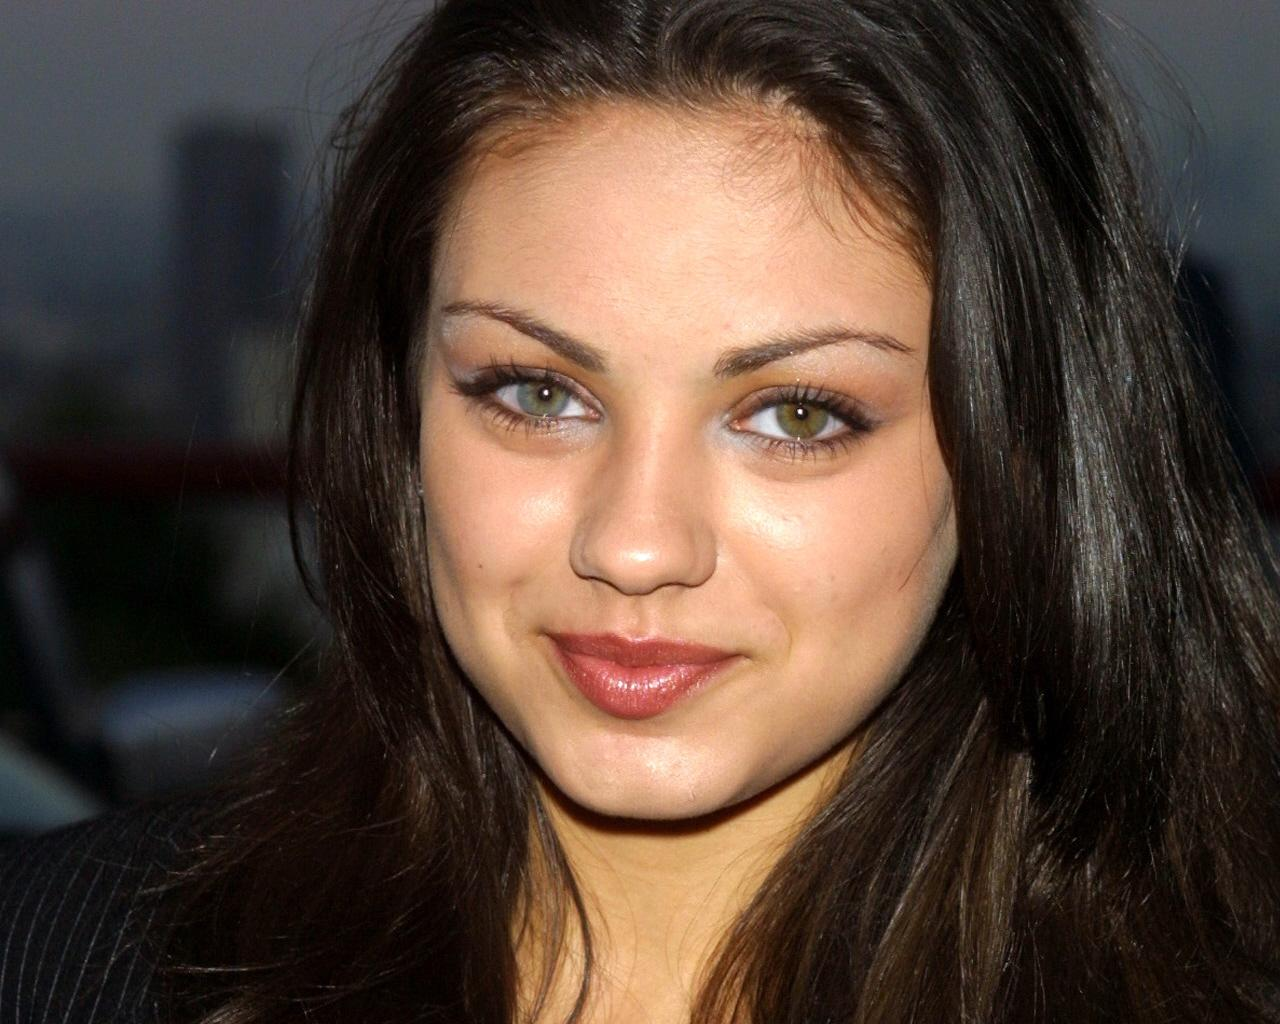 A List Of Celebrities With Two Colored Eyes Heterochromia - HD1280×1024